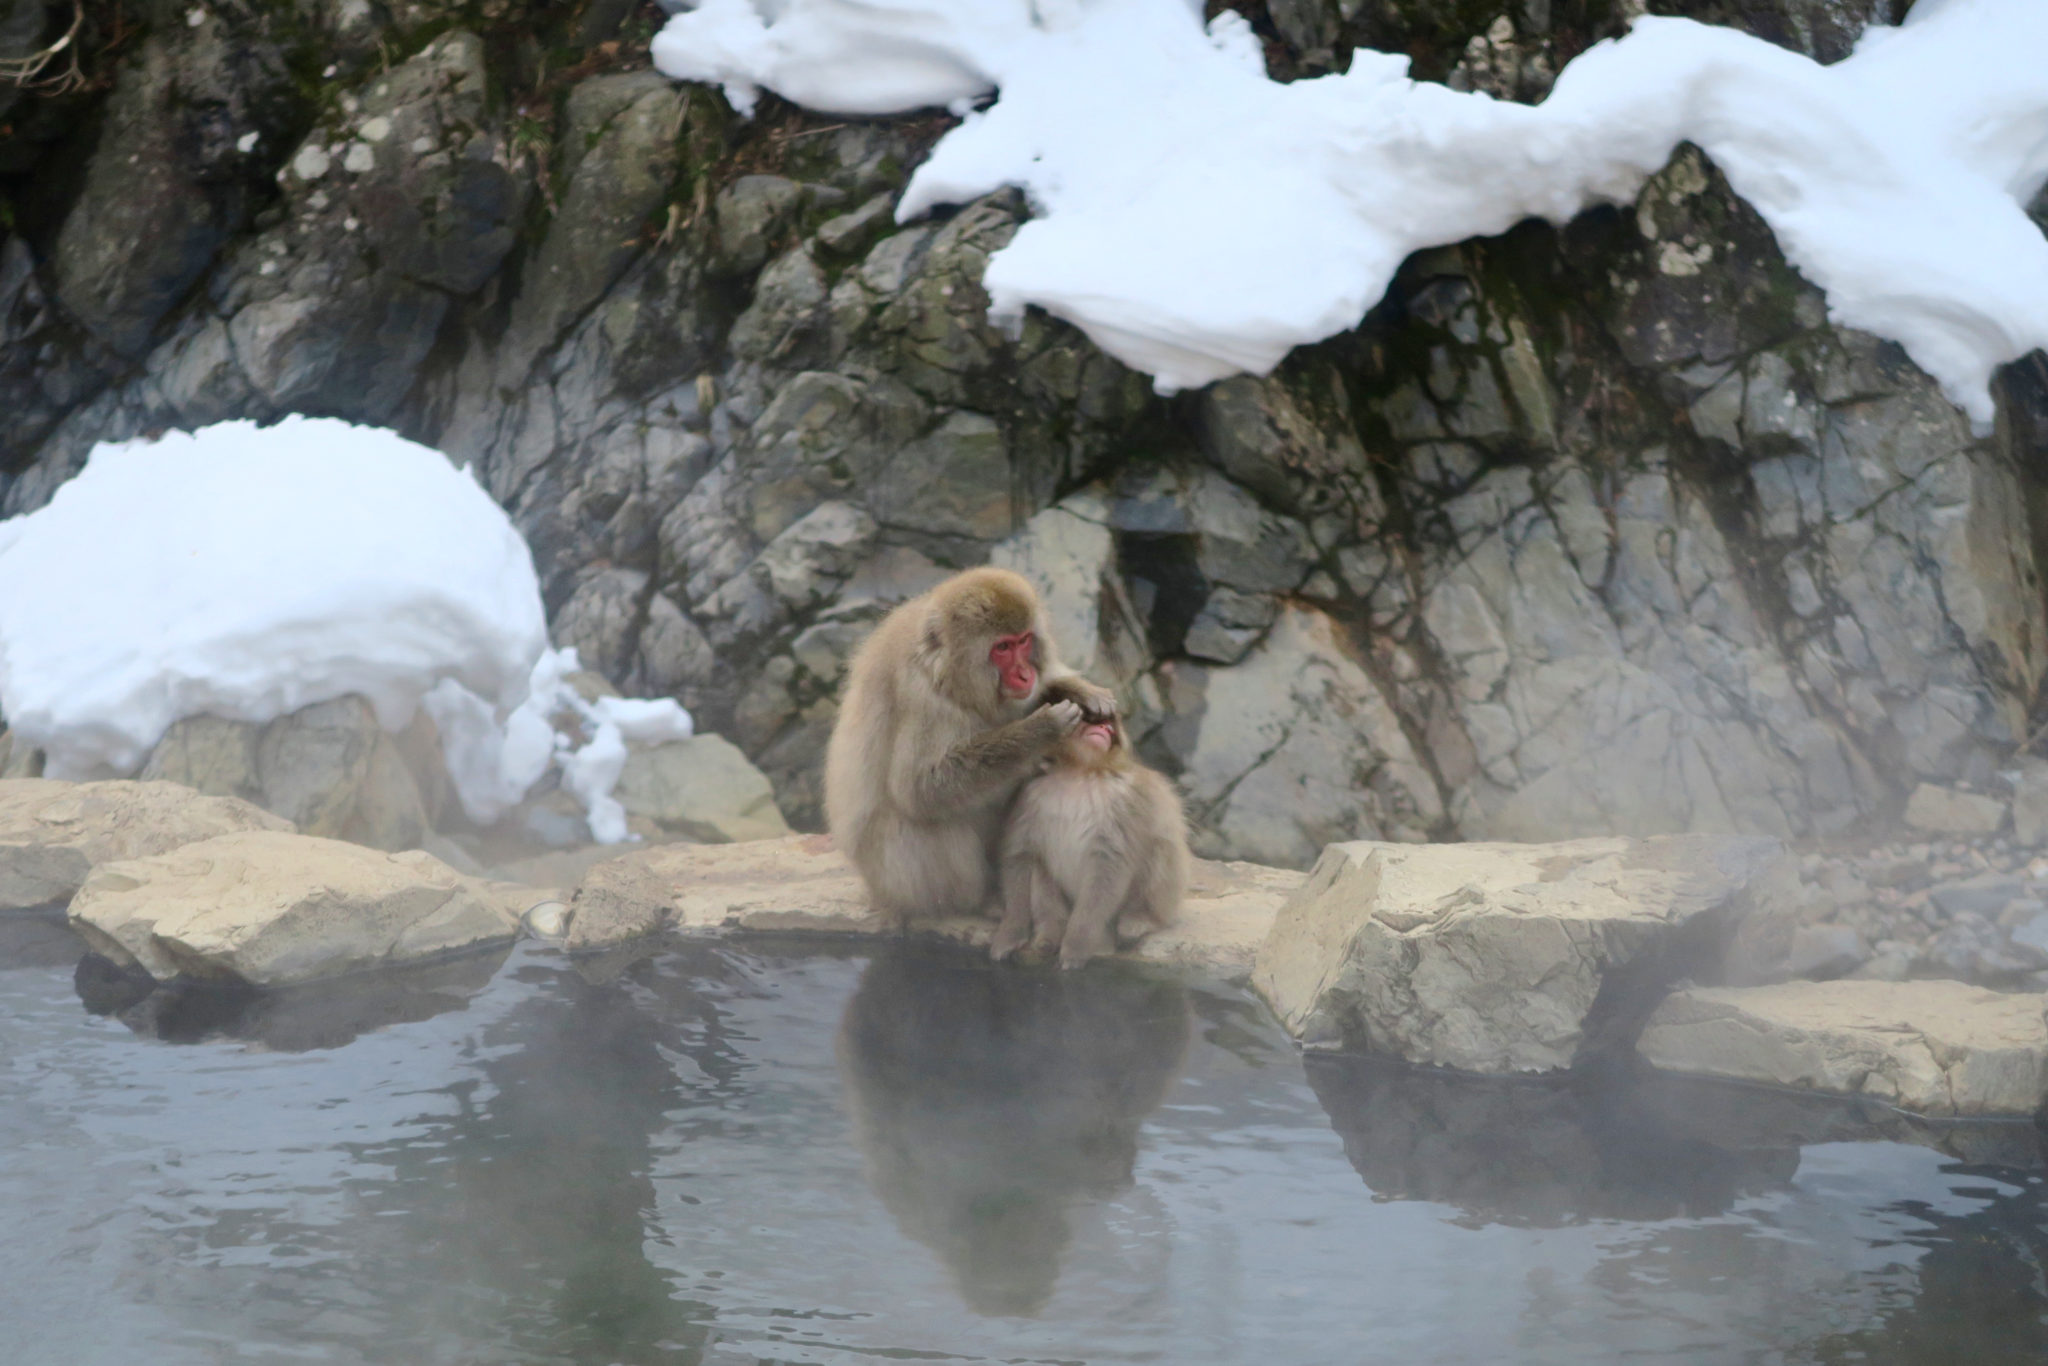 Jigokudani Snow Monkey Park Nagano Prefecture Japan